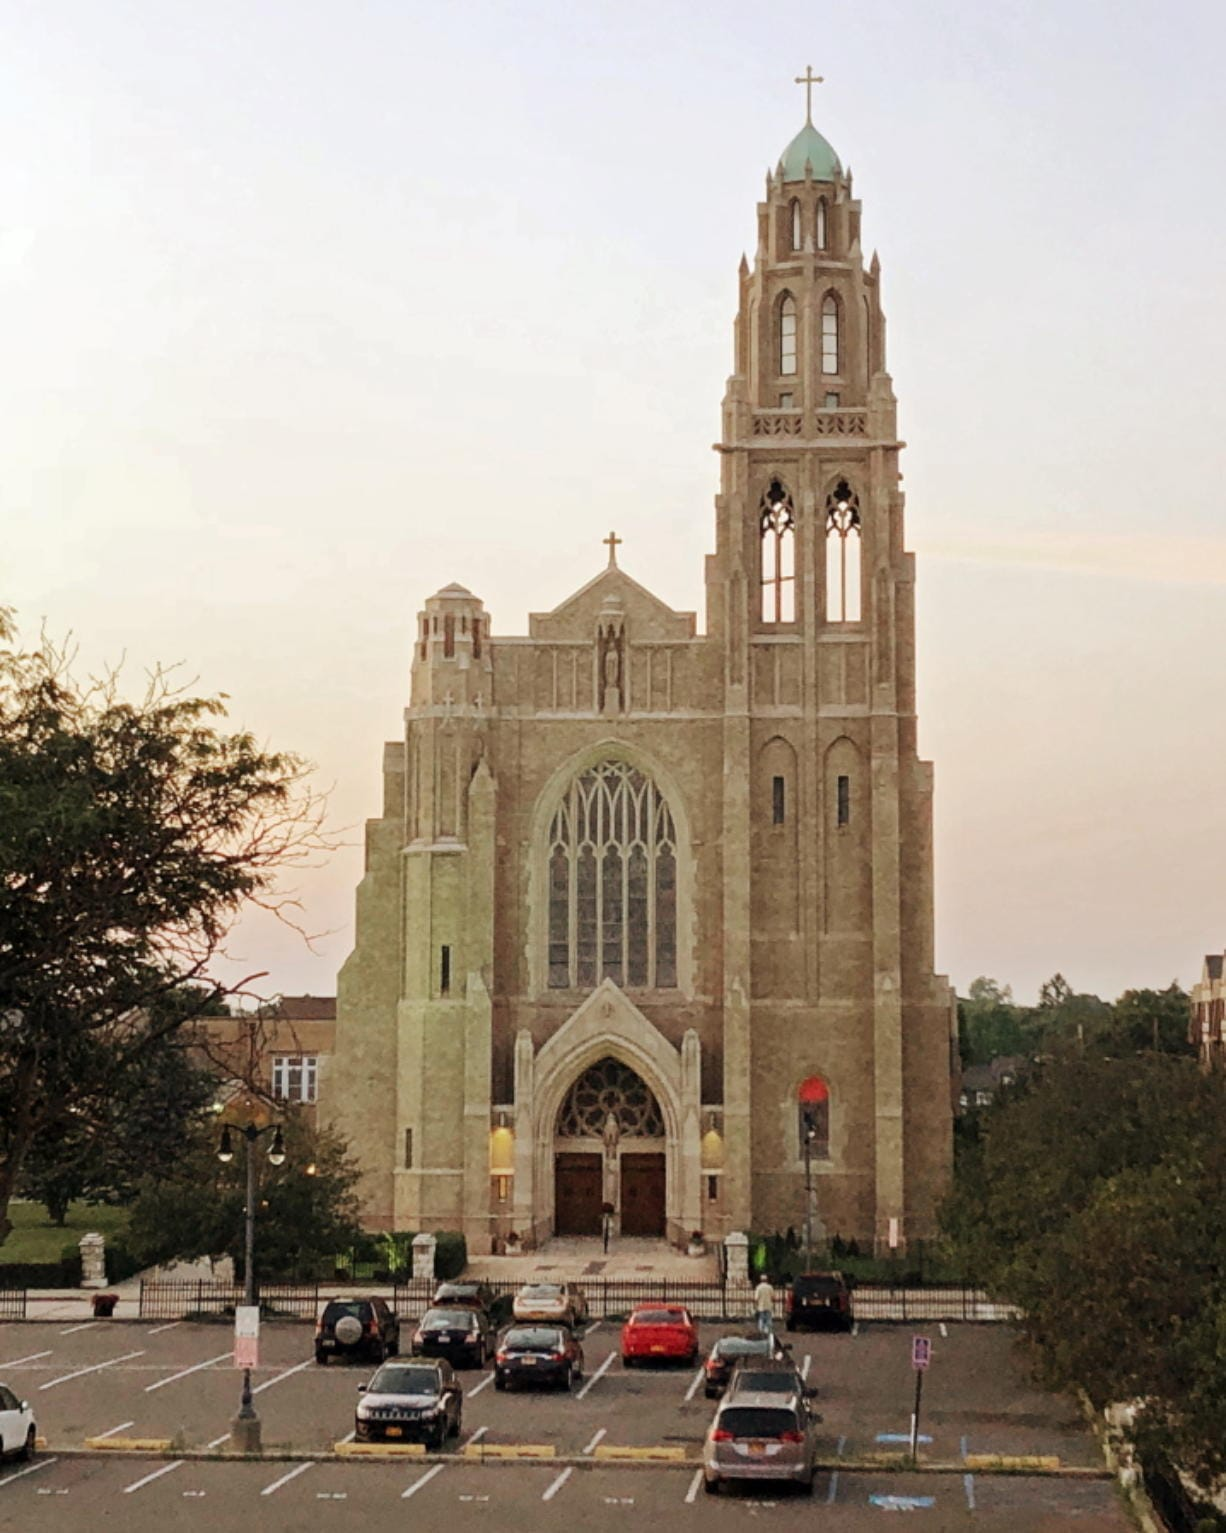 This July 1, 2018 photo shows St. Agnes Cathedral, seat of the Diocese of Rockville Centre, on New York's Long Island. New York's Roman Catholic Diocese of Rockville Centre, the largest in the U.S., has filed for Chapter 11 bankruptcy protection because of financial pressure from lawsuits over past sexual abuse by clergy members. (AP Photo/Michael R.